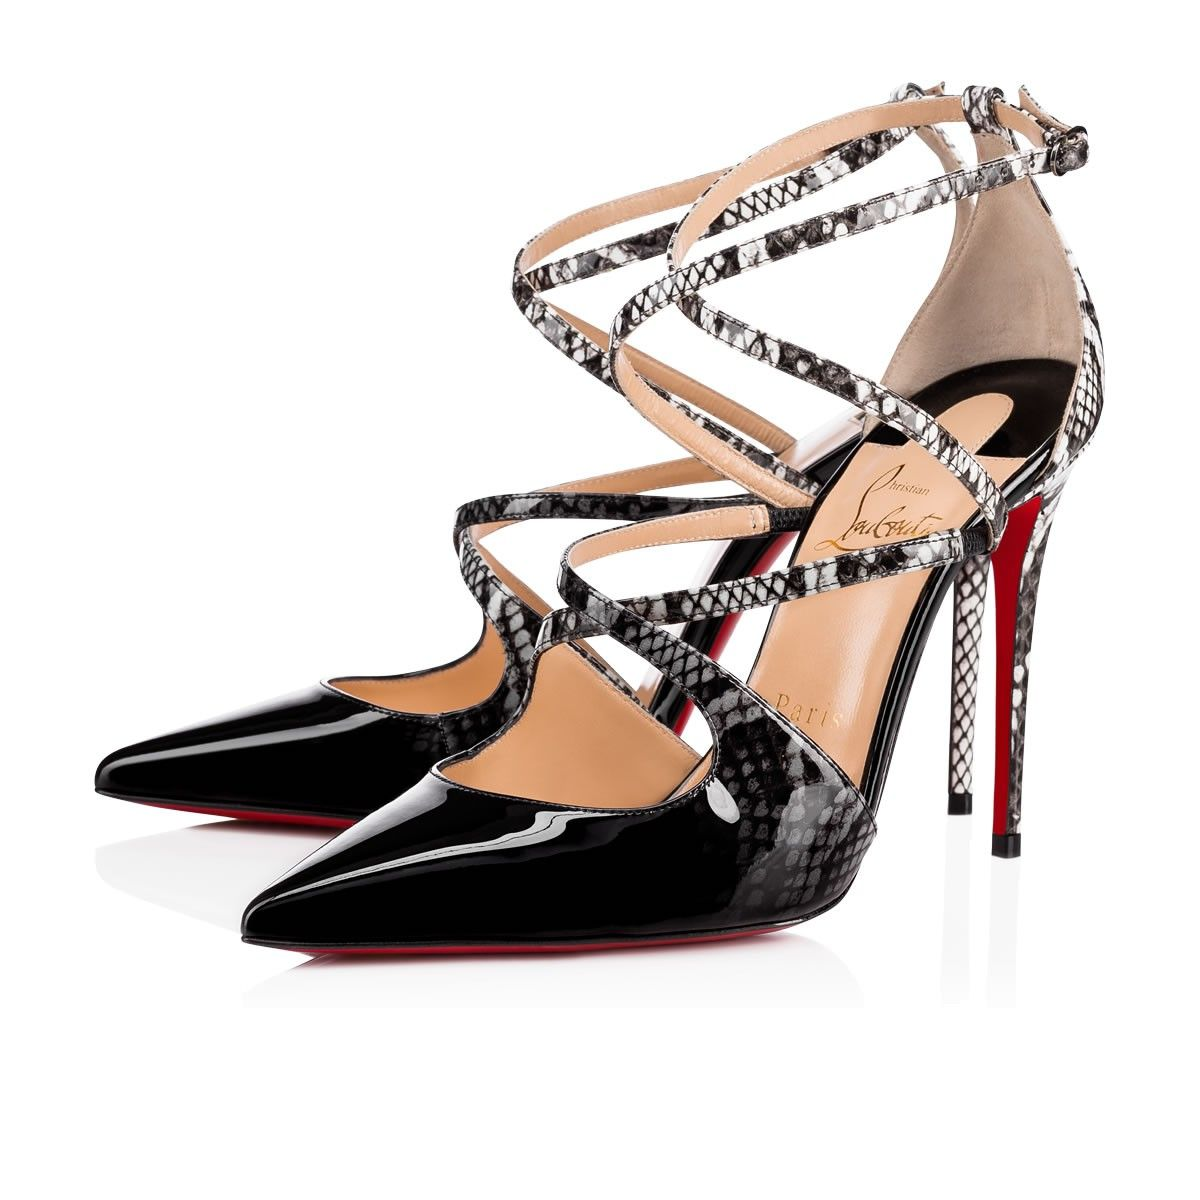 new products 2d15a 00625 CHRISTIAN LOUBOUTIN Crossfliketa. #christianlouboutin #shoes ...